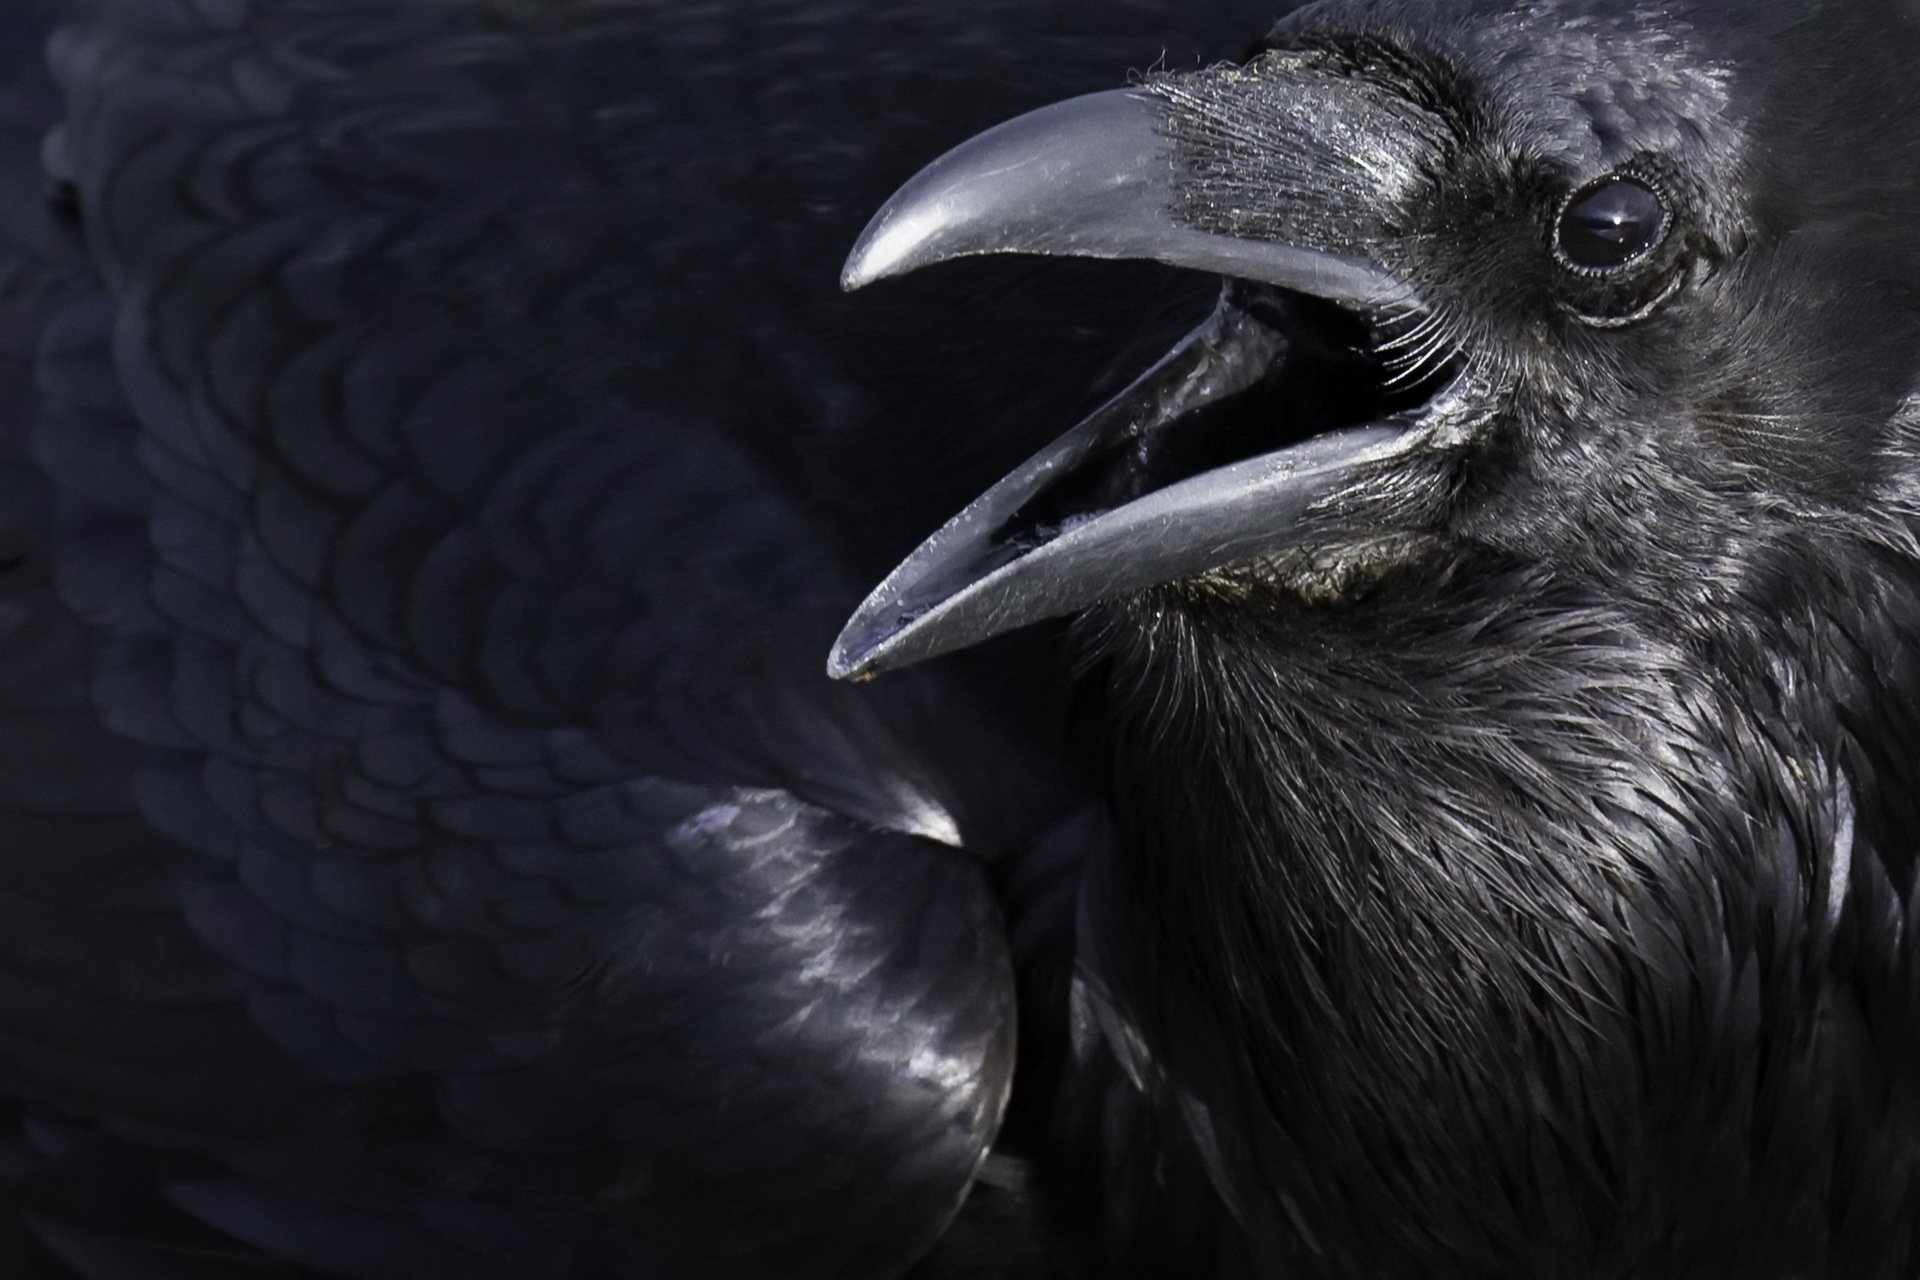 Crow Full Hd Wallpaper And Background Image 1920x1280 HD Wallpapers Download Free Images Wallpaper [1000image.com]